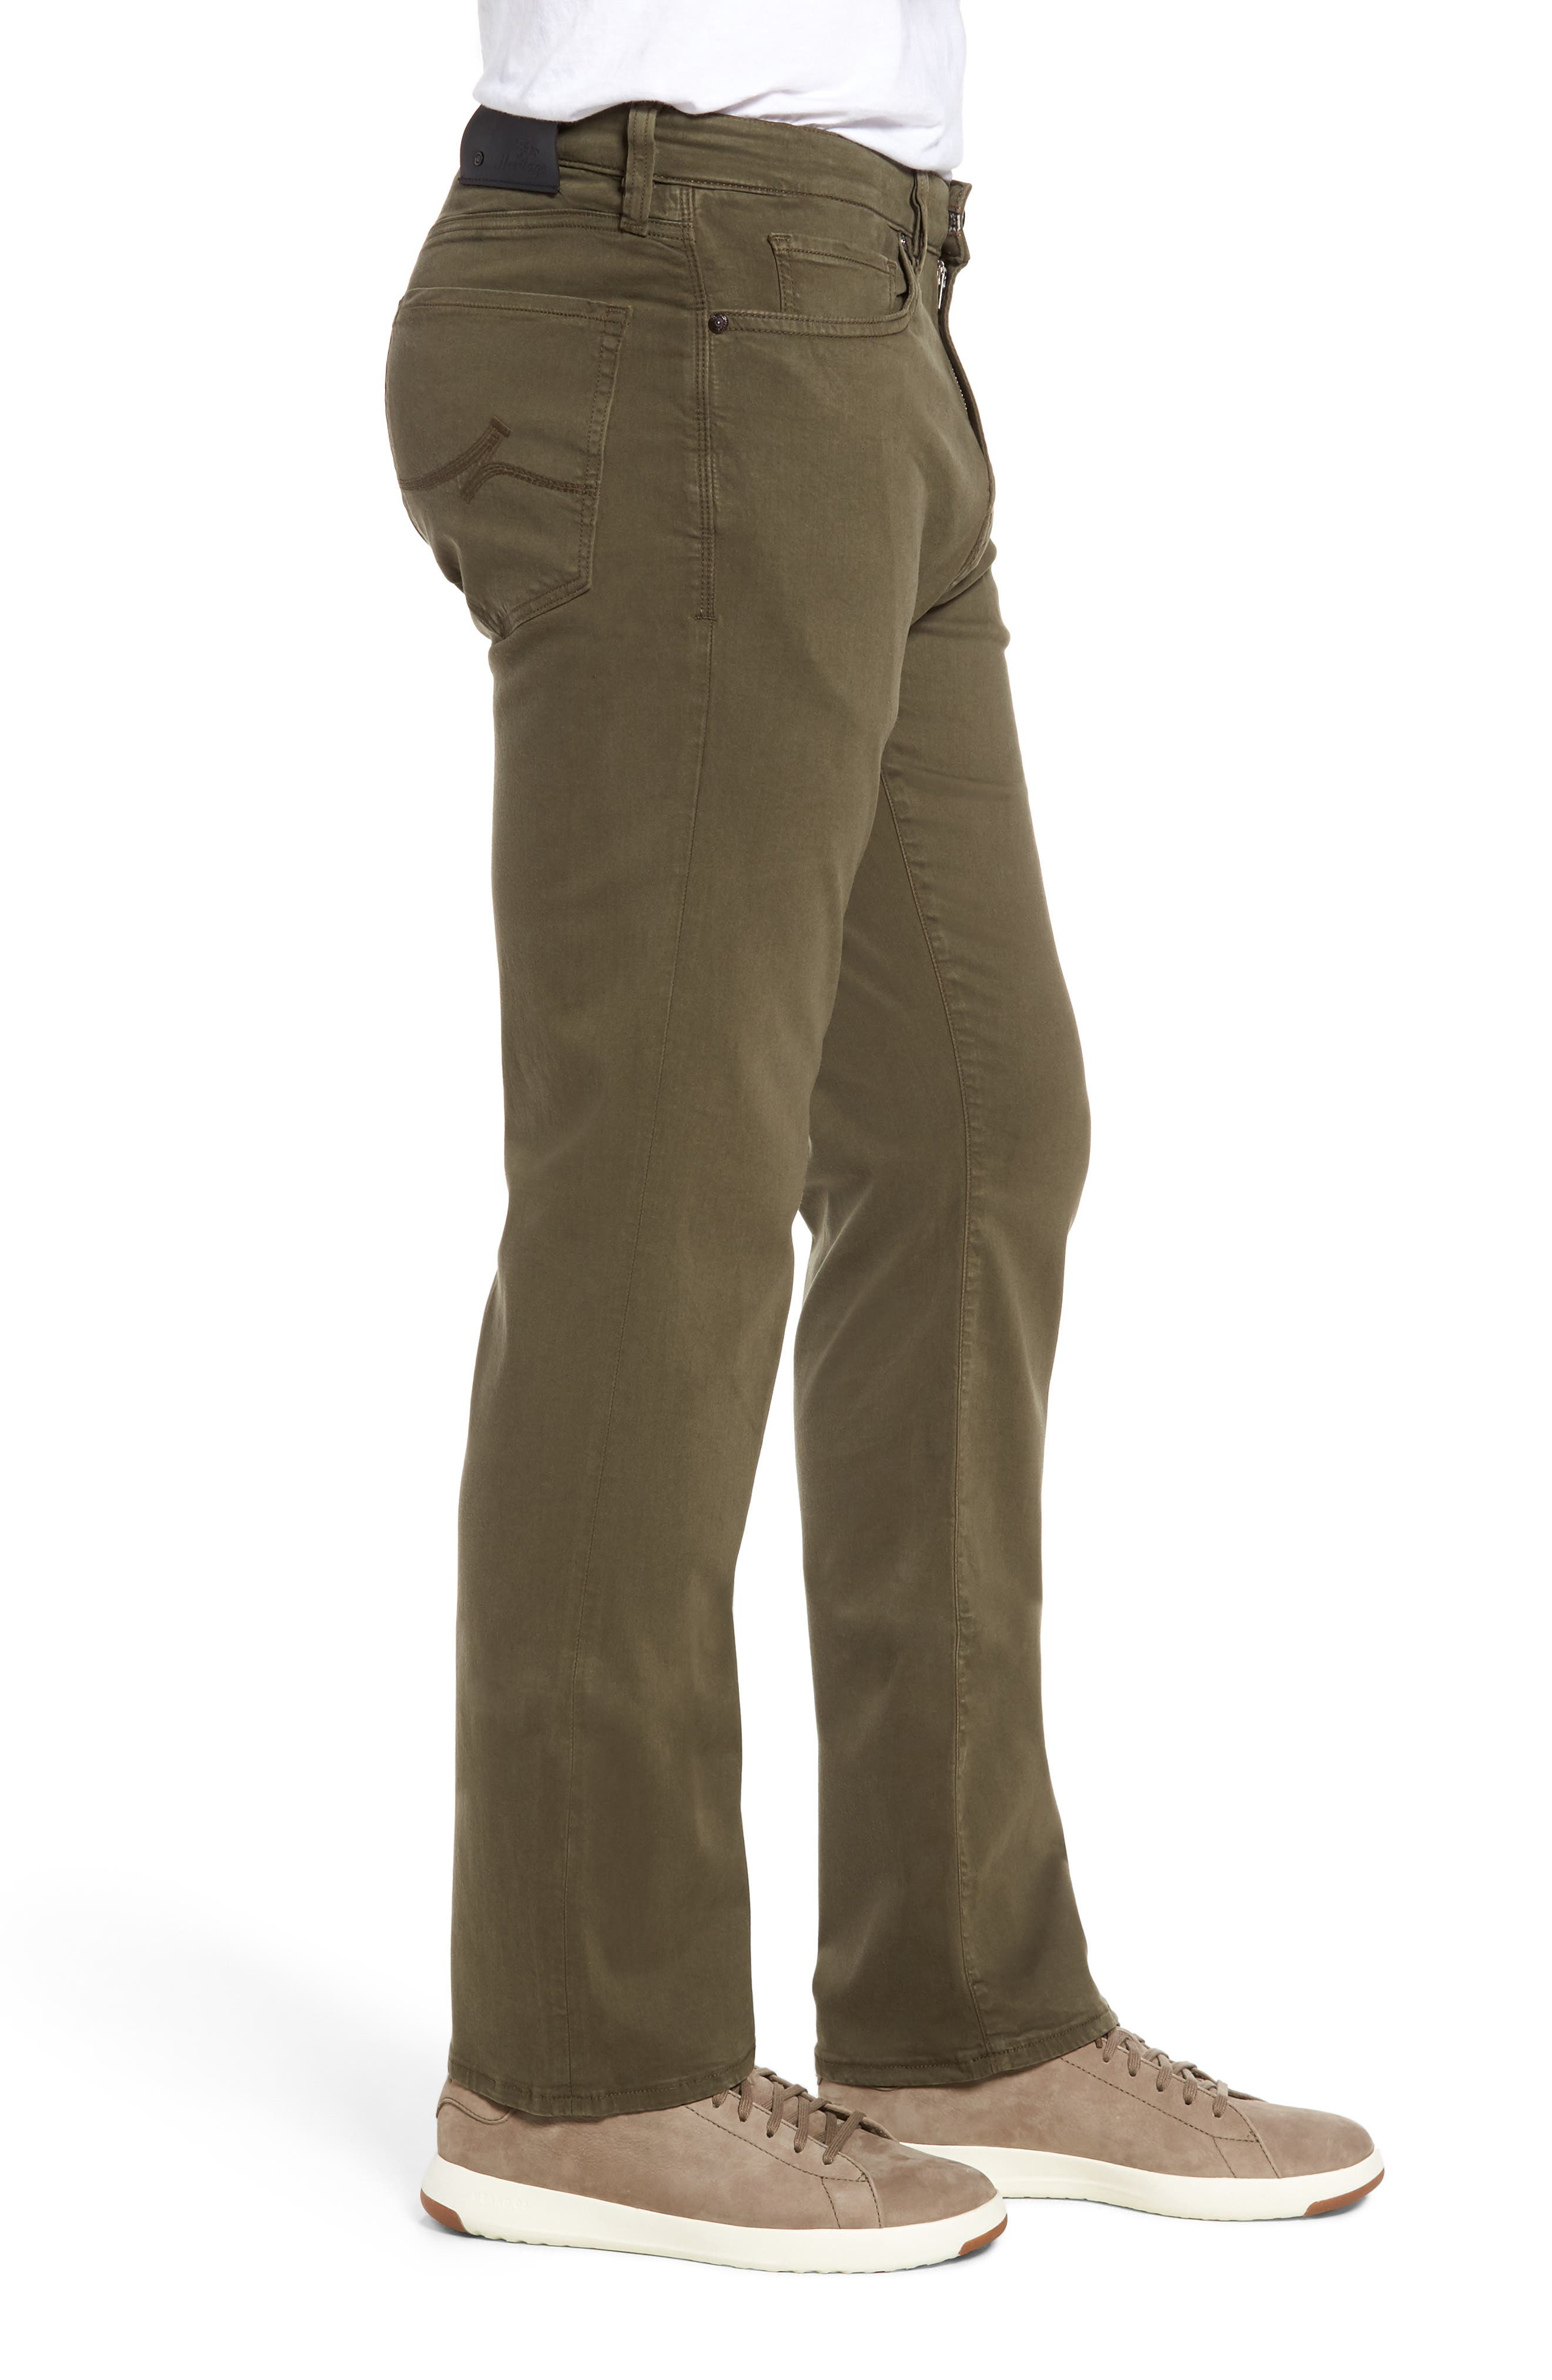 Charisma Relaxed Fit Pants,                             Alternate thumbnail 3, color,                             300